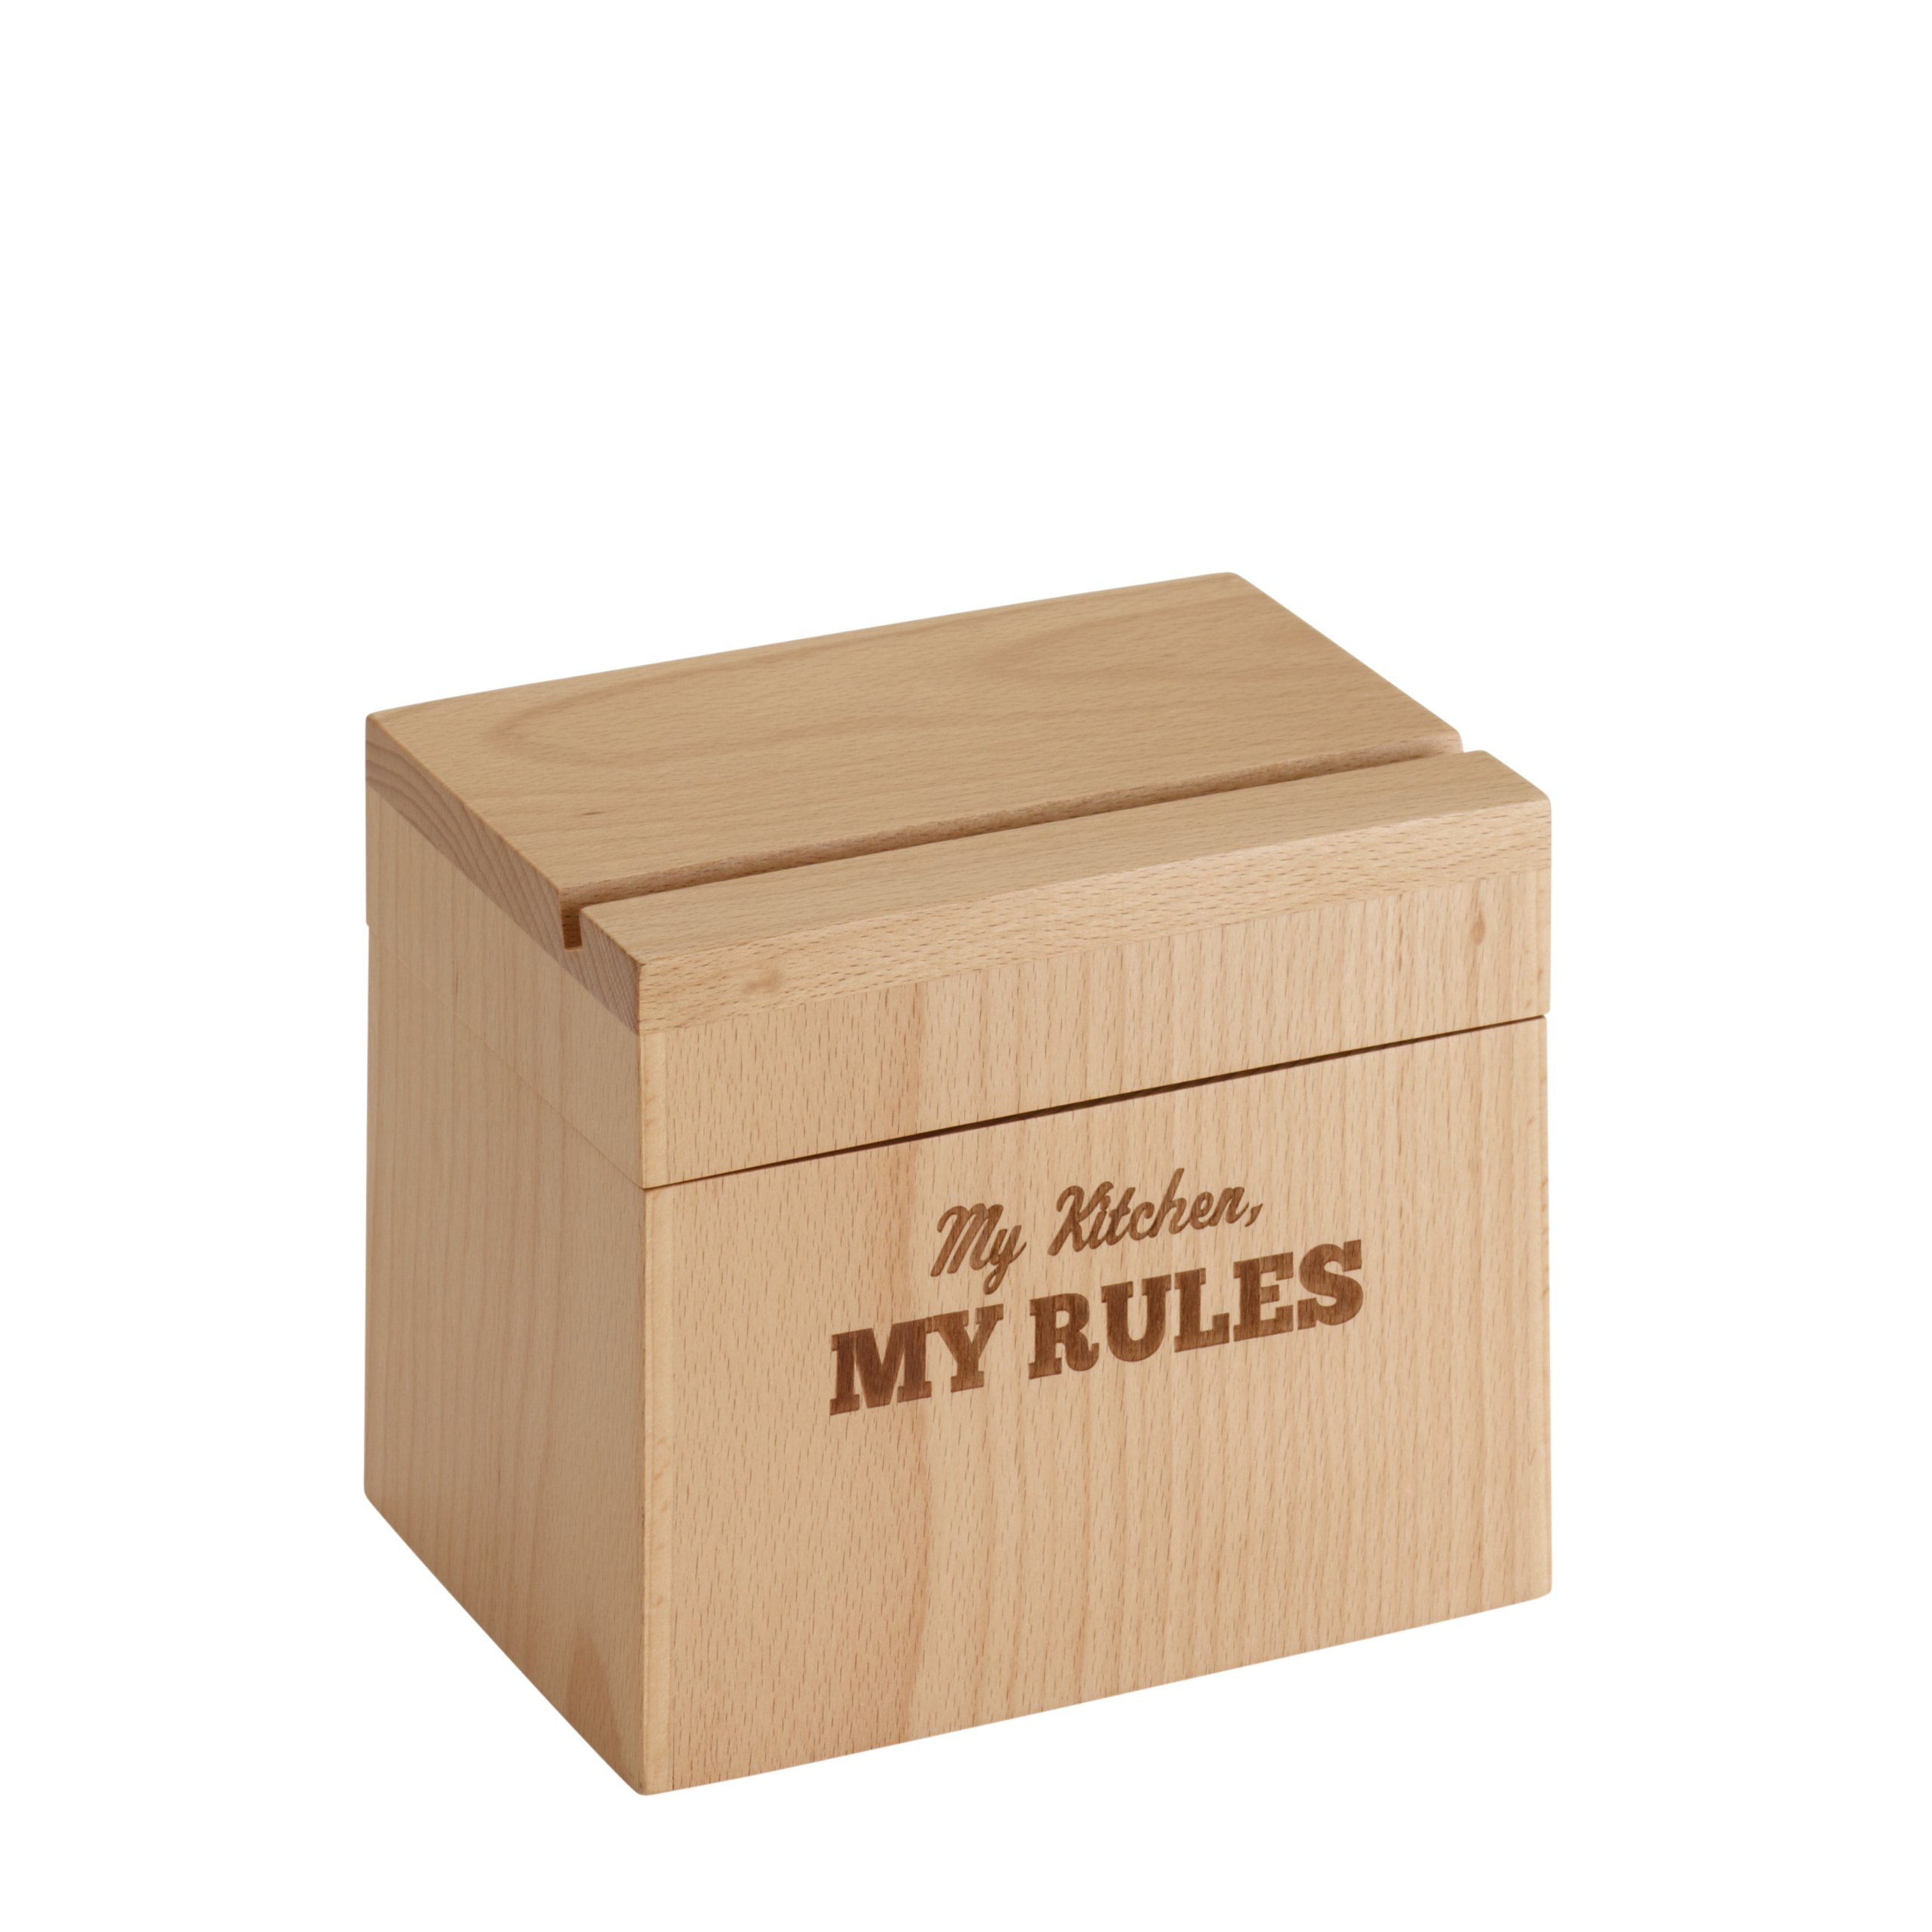 Cake Boss Countertop Accessories Beechwood Recipe Box with My Kitchen, My Rules Message